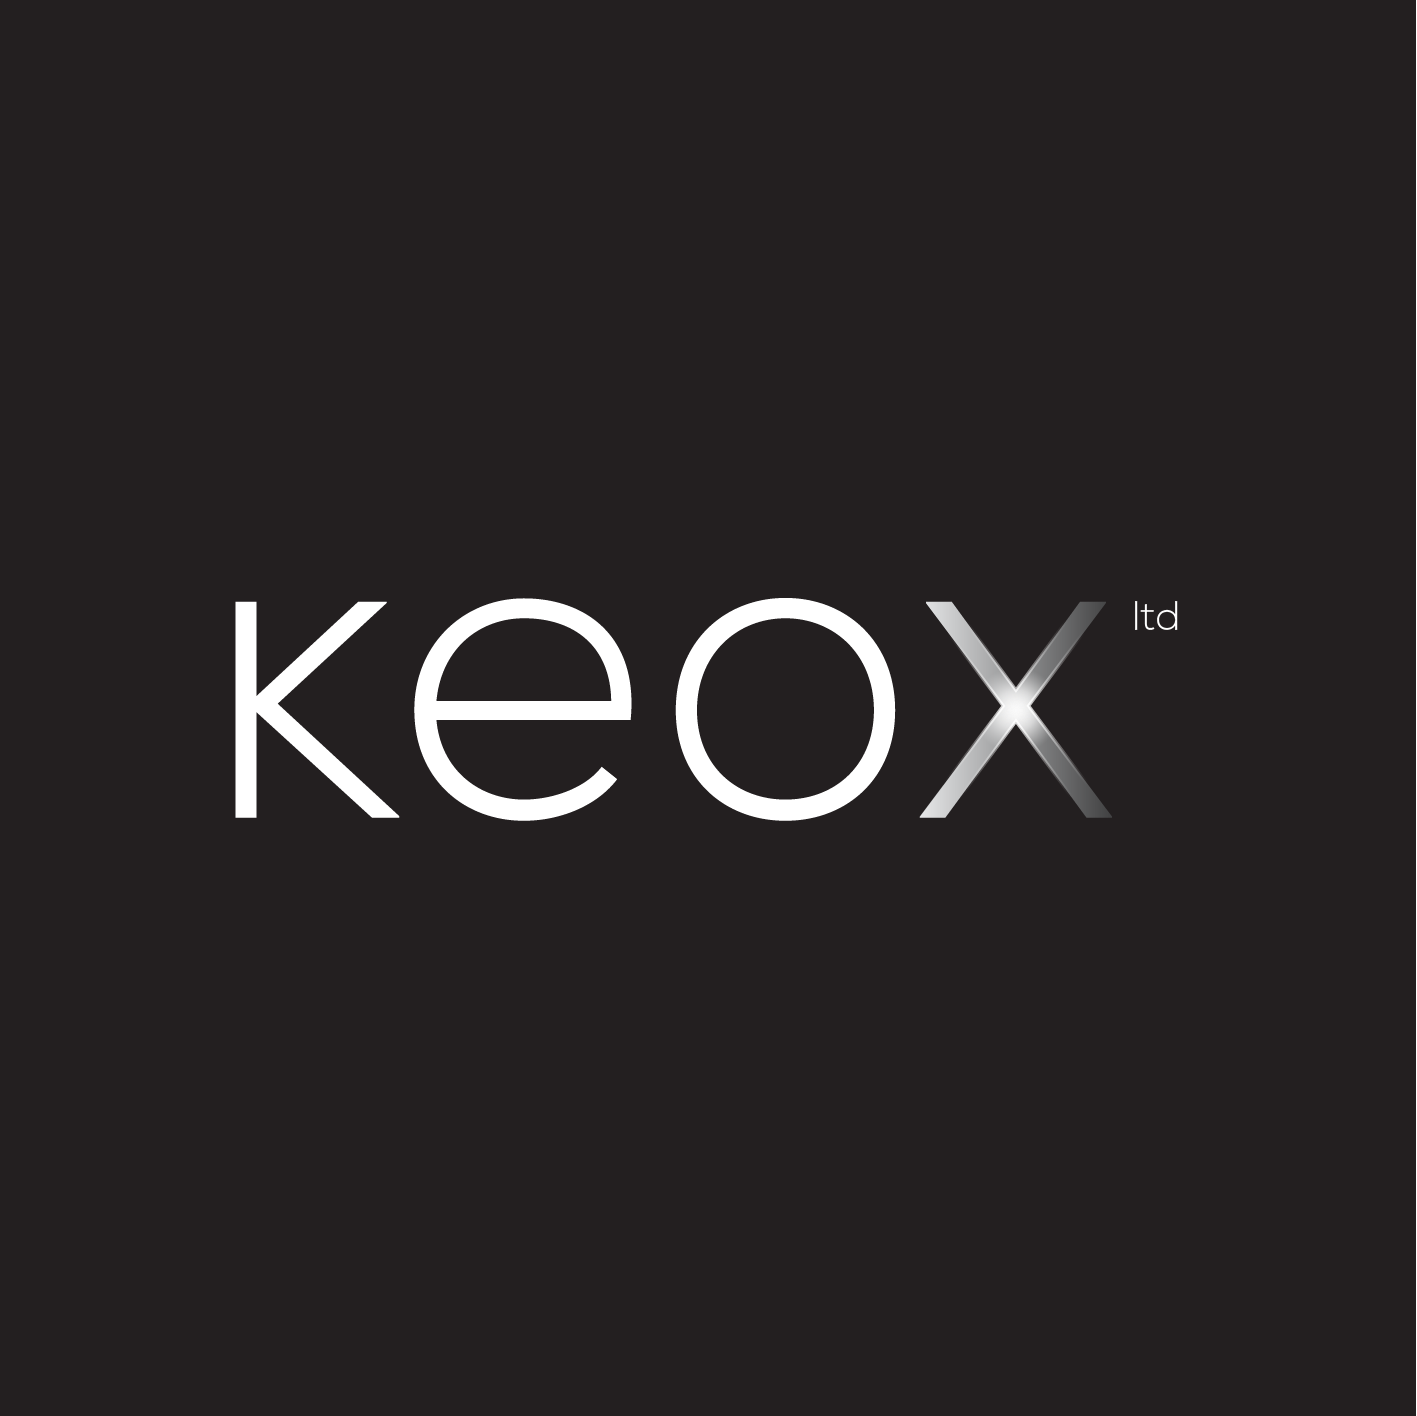 KEOX LIMITED is a UK based company providing all necessary business tool for Neverforget.video